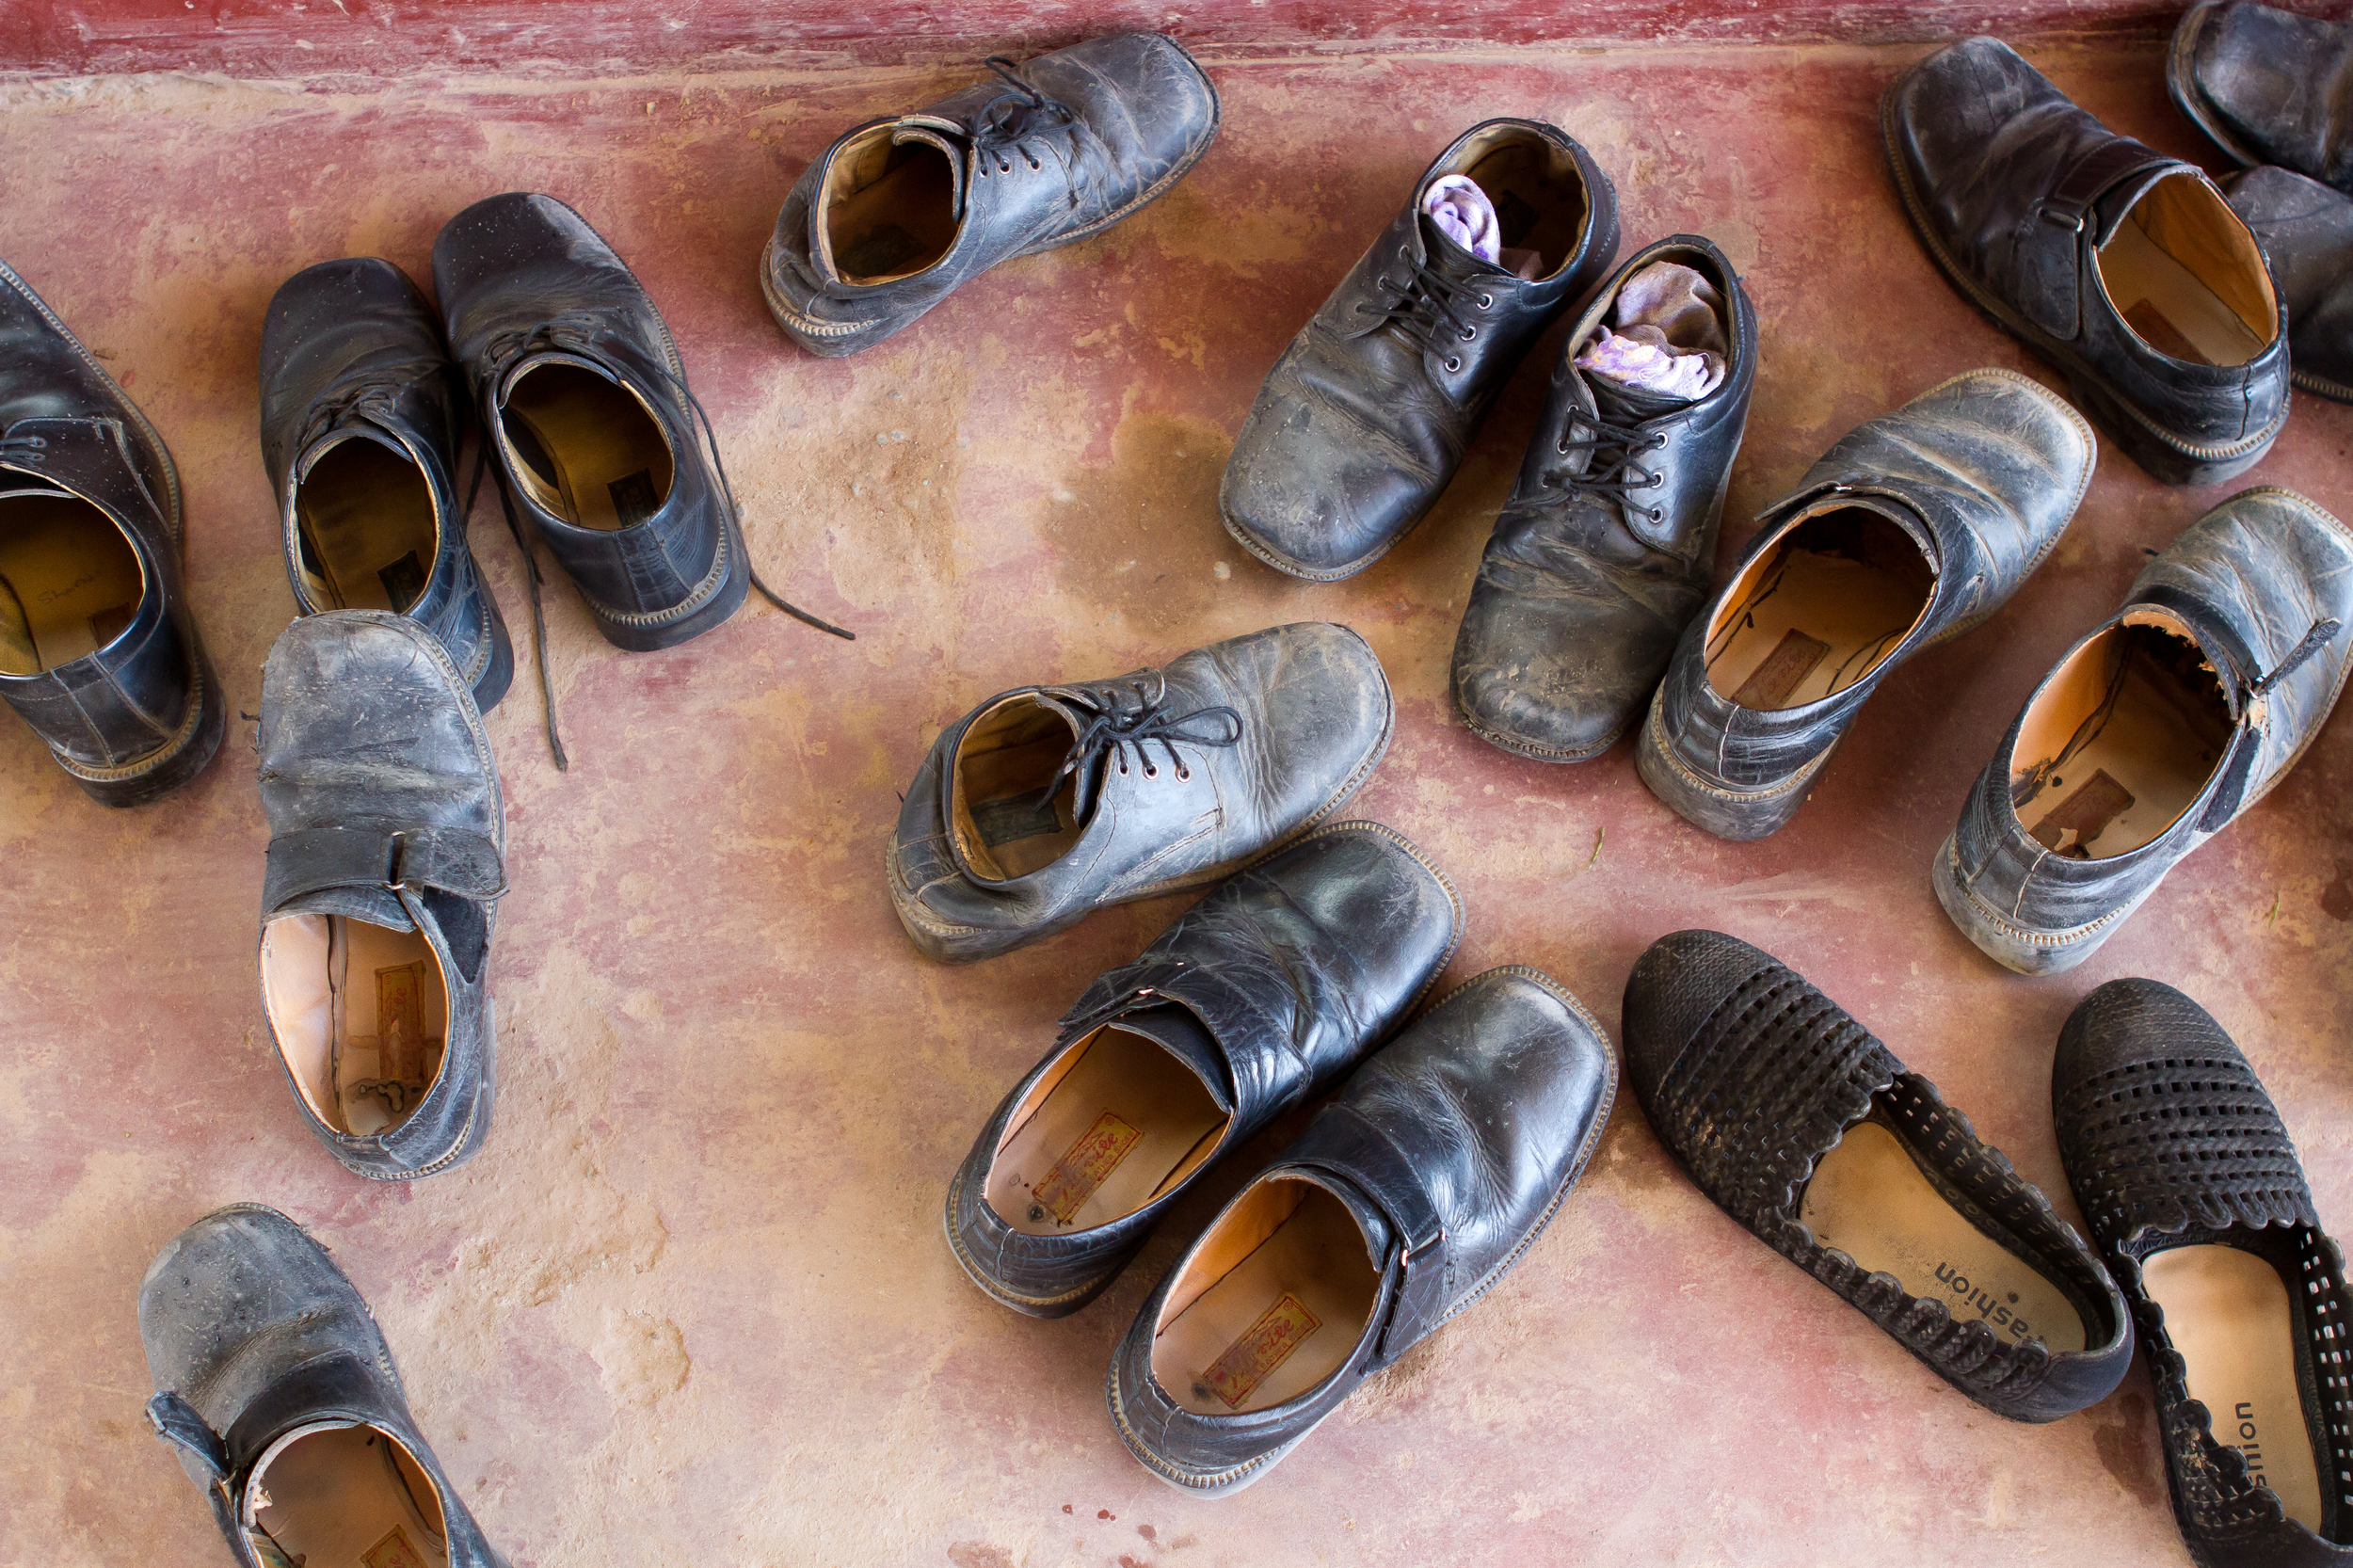 Students' shoes in Nepal 2015. (photo by Kate Lord)